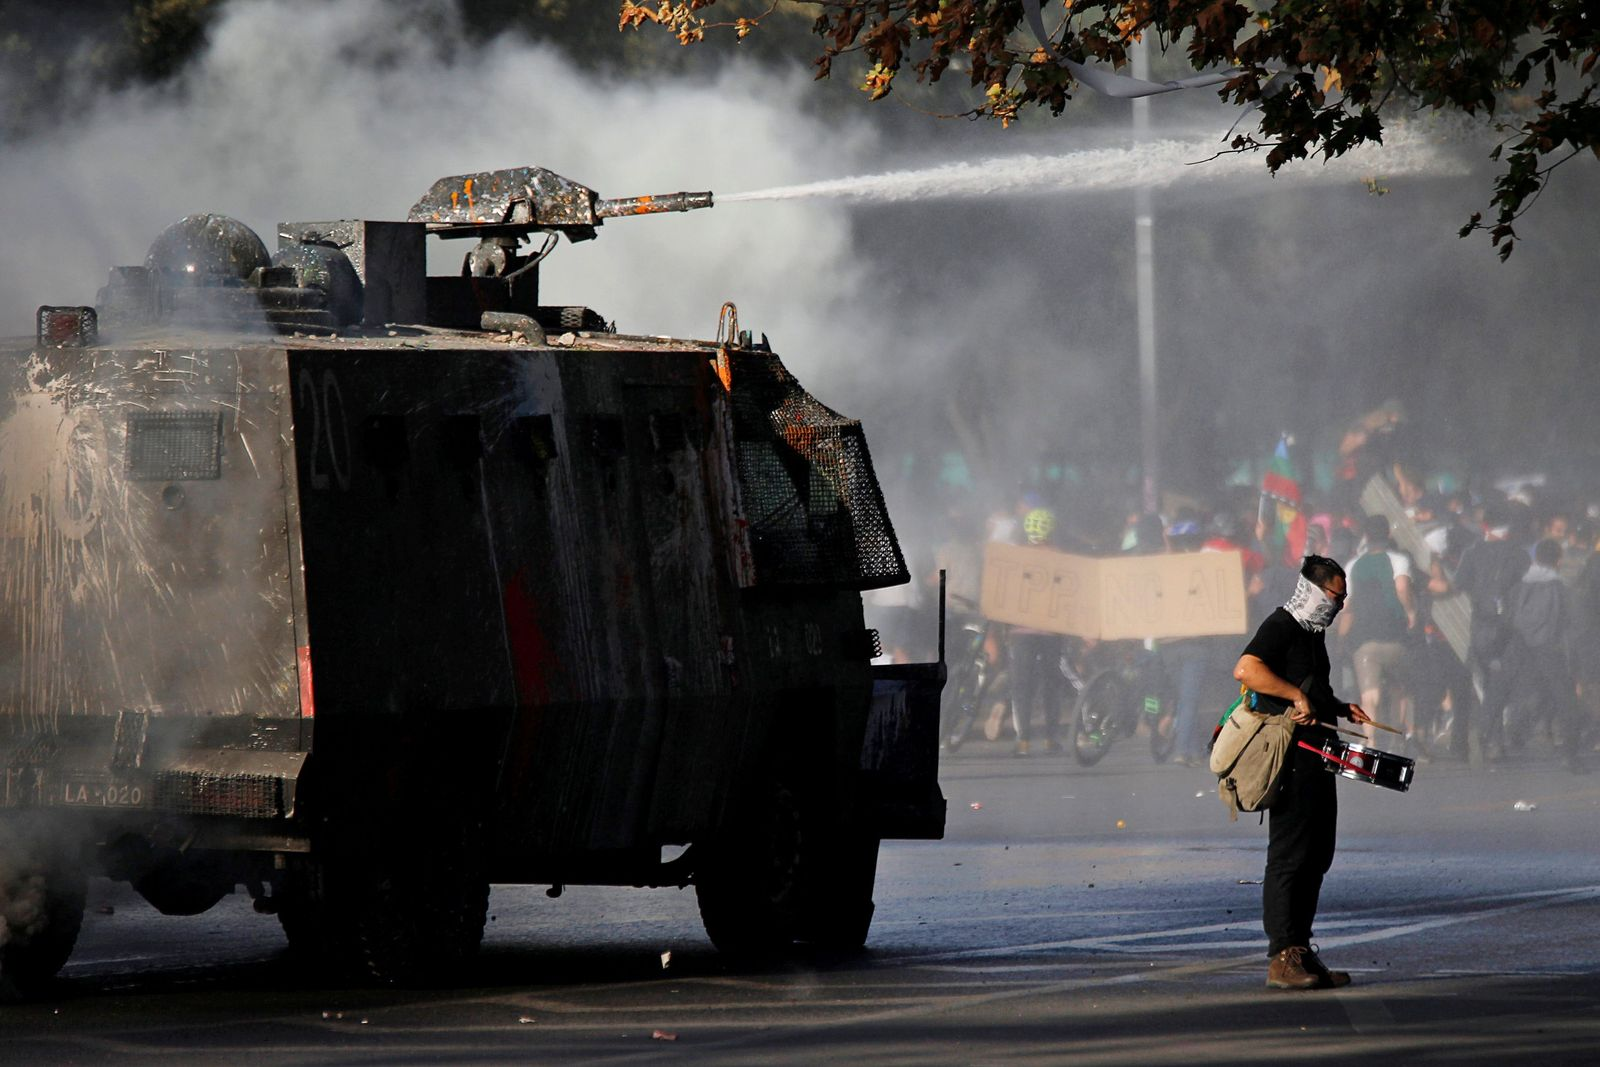 CHILE-PROTESTS - Lage